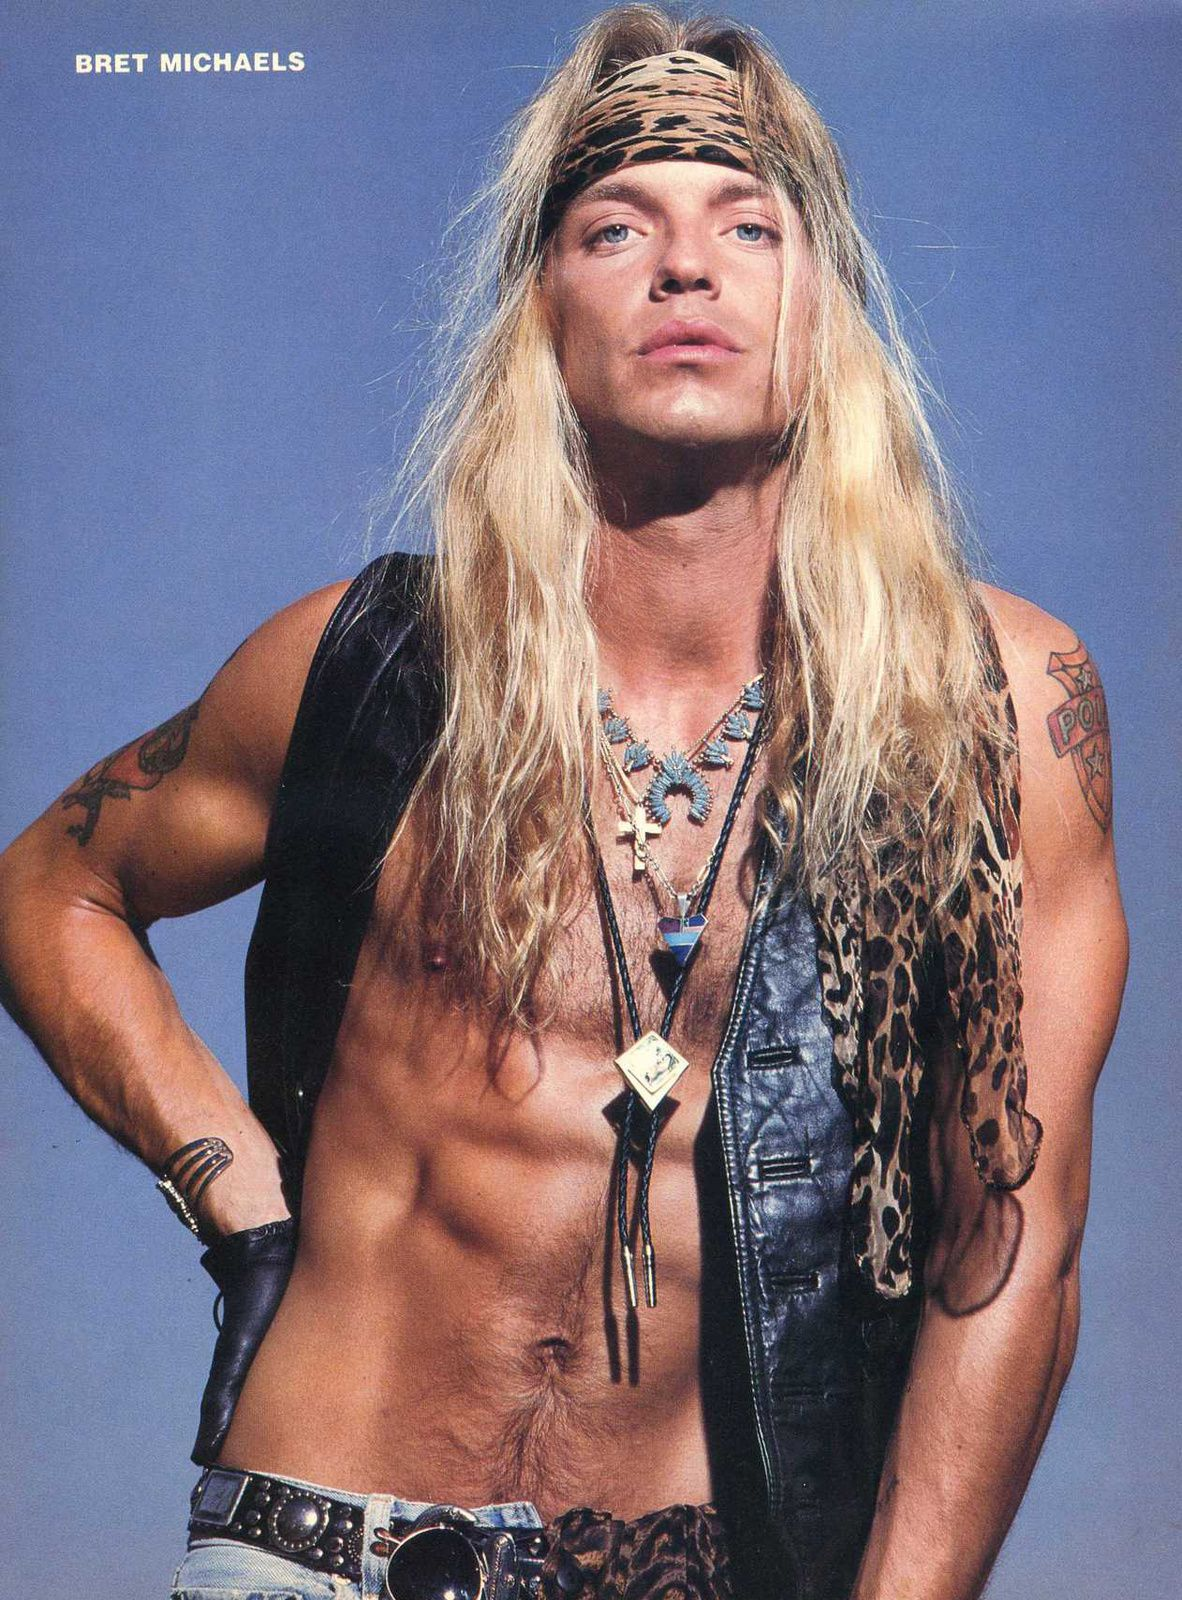 Bret Michaels - 80's